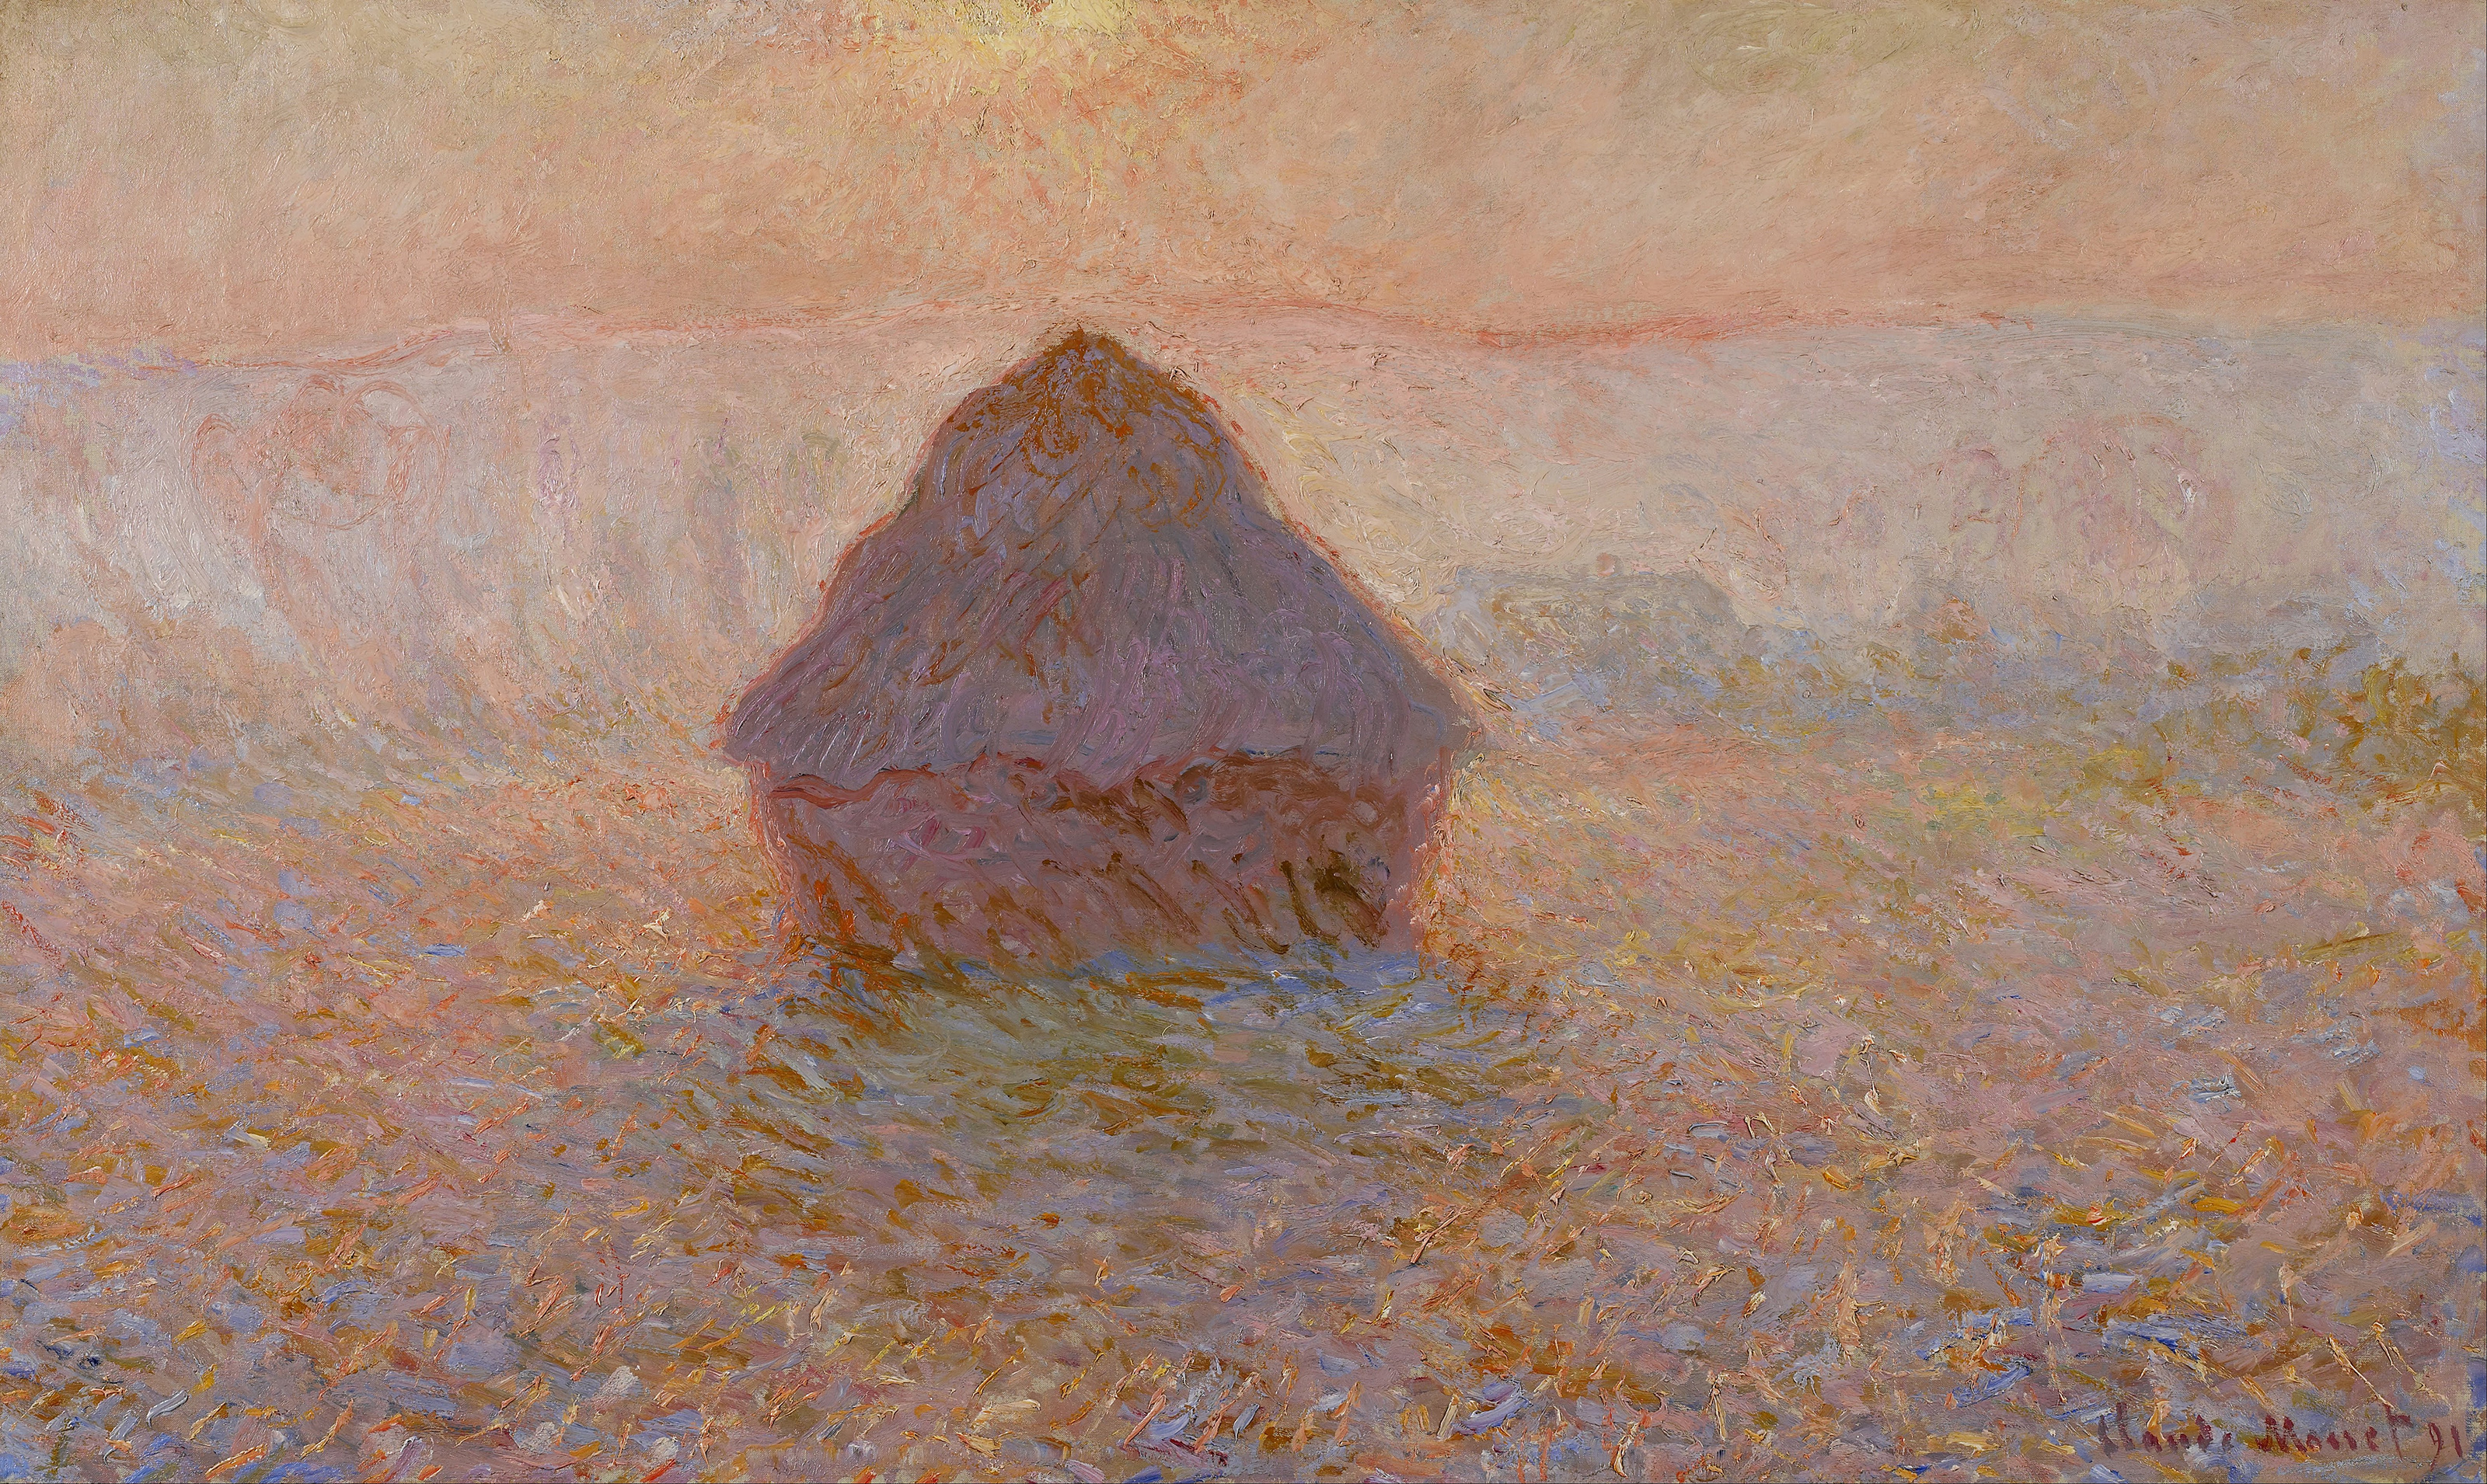 an analysis of the impressionist painting grainstack sunset by claude monet See the impressionist paintings of claude monet, 1889-1894 x claude monet paintings 1889-1894 sunset) by claude monet portrays the effects of the late.